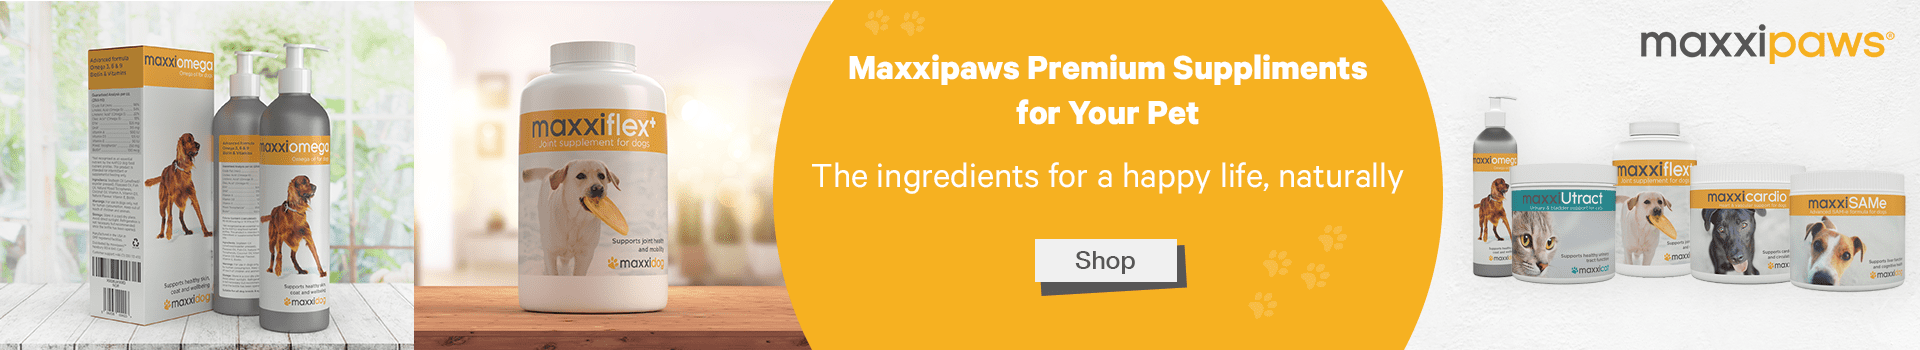 Maxxipaws Brand